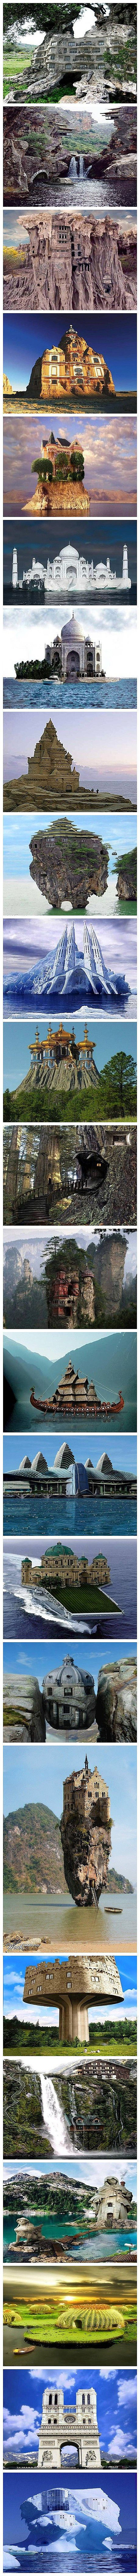 24 amazing buildings around the world? interesting photoshops - several photos you can definitely tell are not real so I'm guessing all of them are altered.